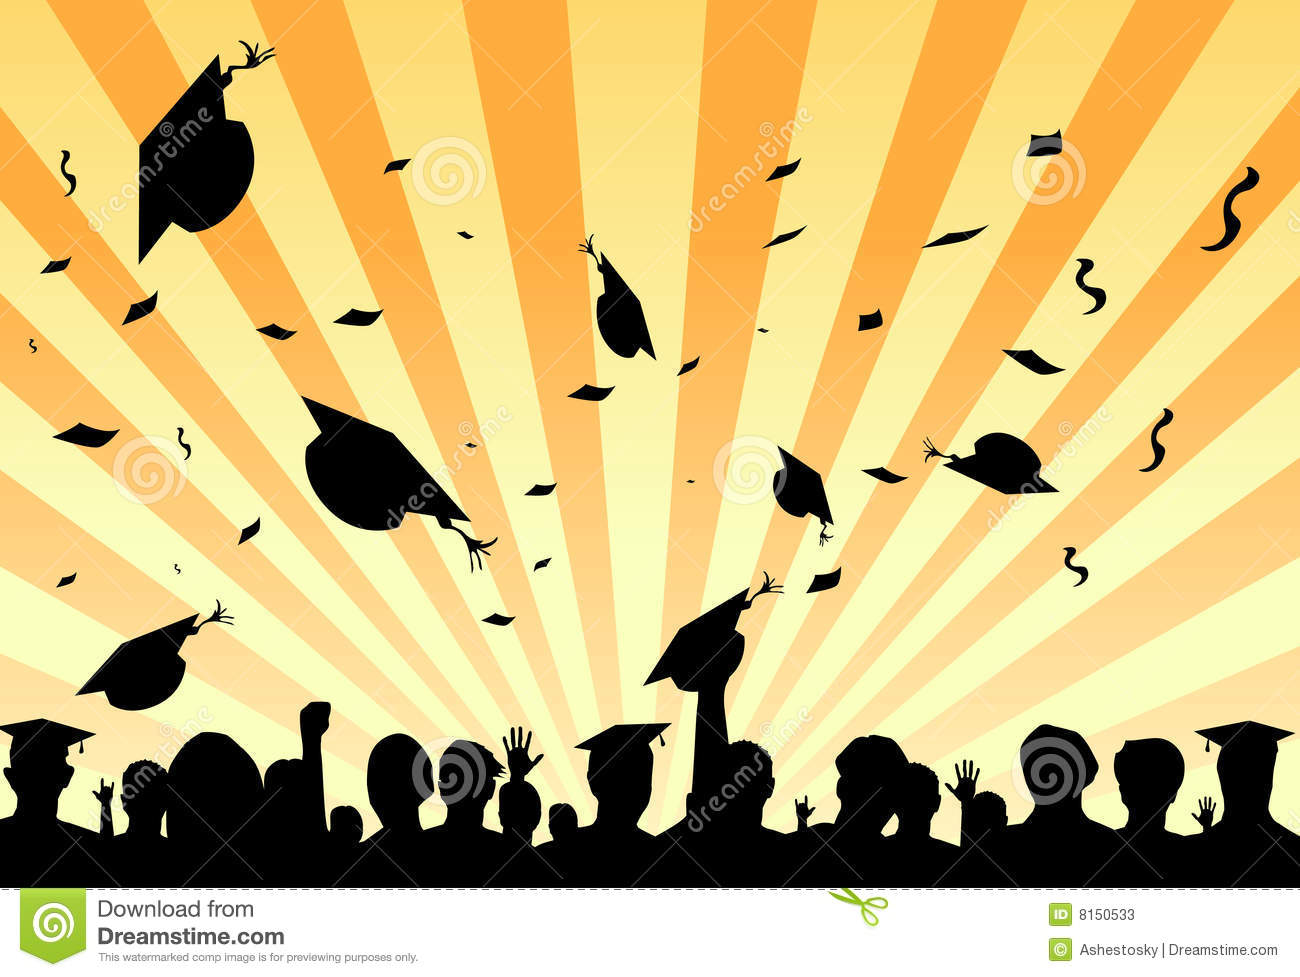 Graduation Day Party By Students Stock Vector - Image: 8150533